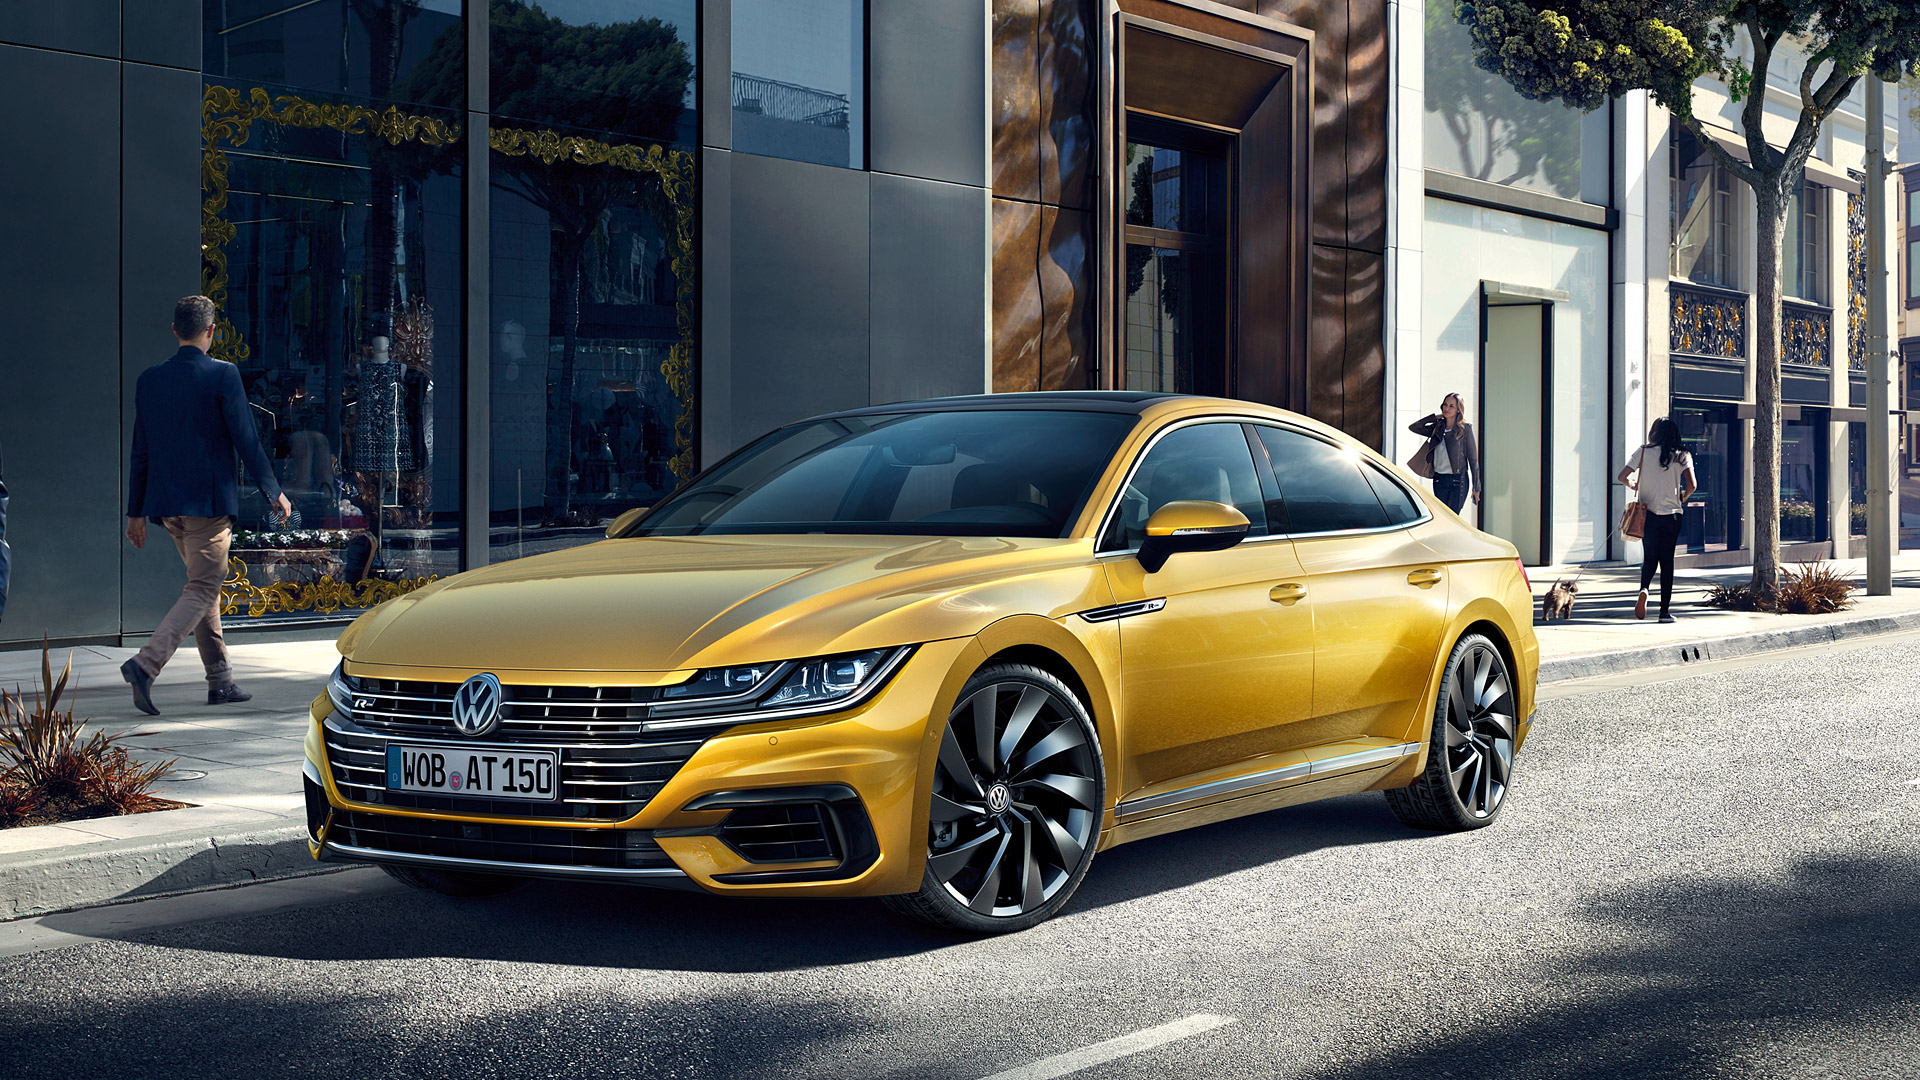 1920x1080 - Volkswagen Arteon Wallpapers 1